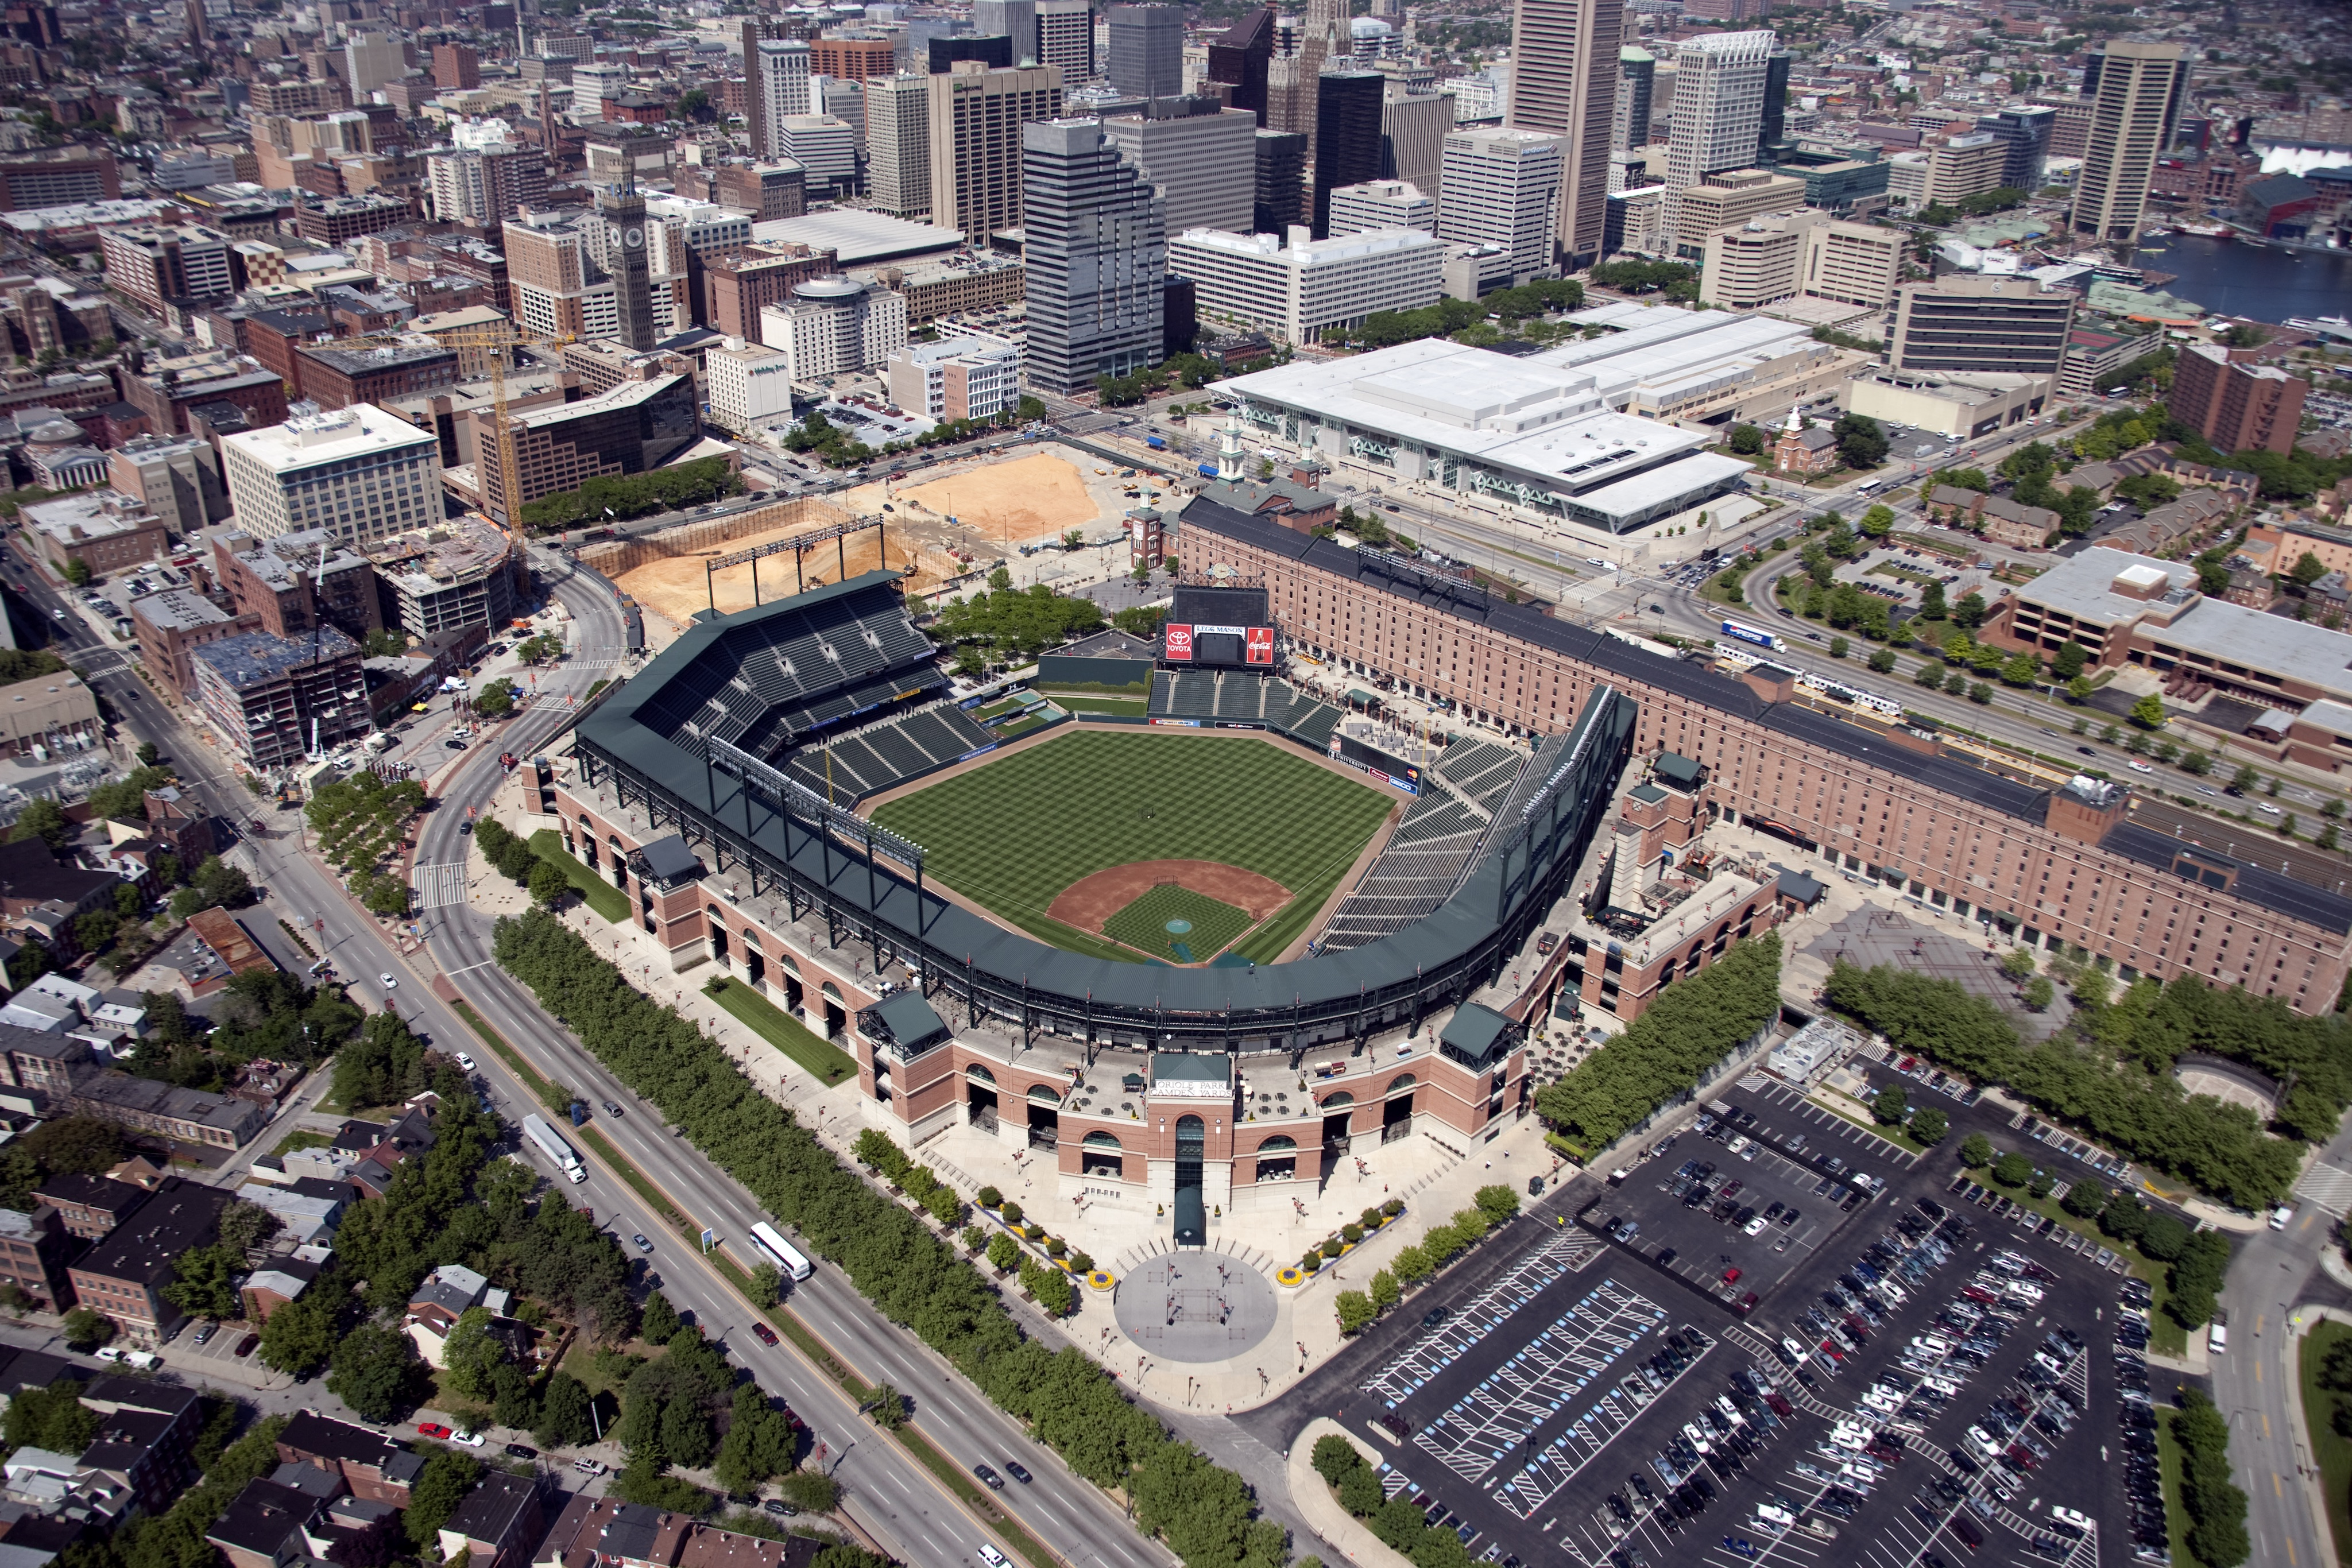 Beautiful aerial view of Oriole Park at Camden Yards in Baltimore, Maryland. May 11th, 2006